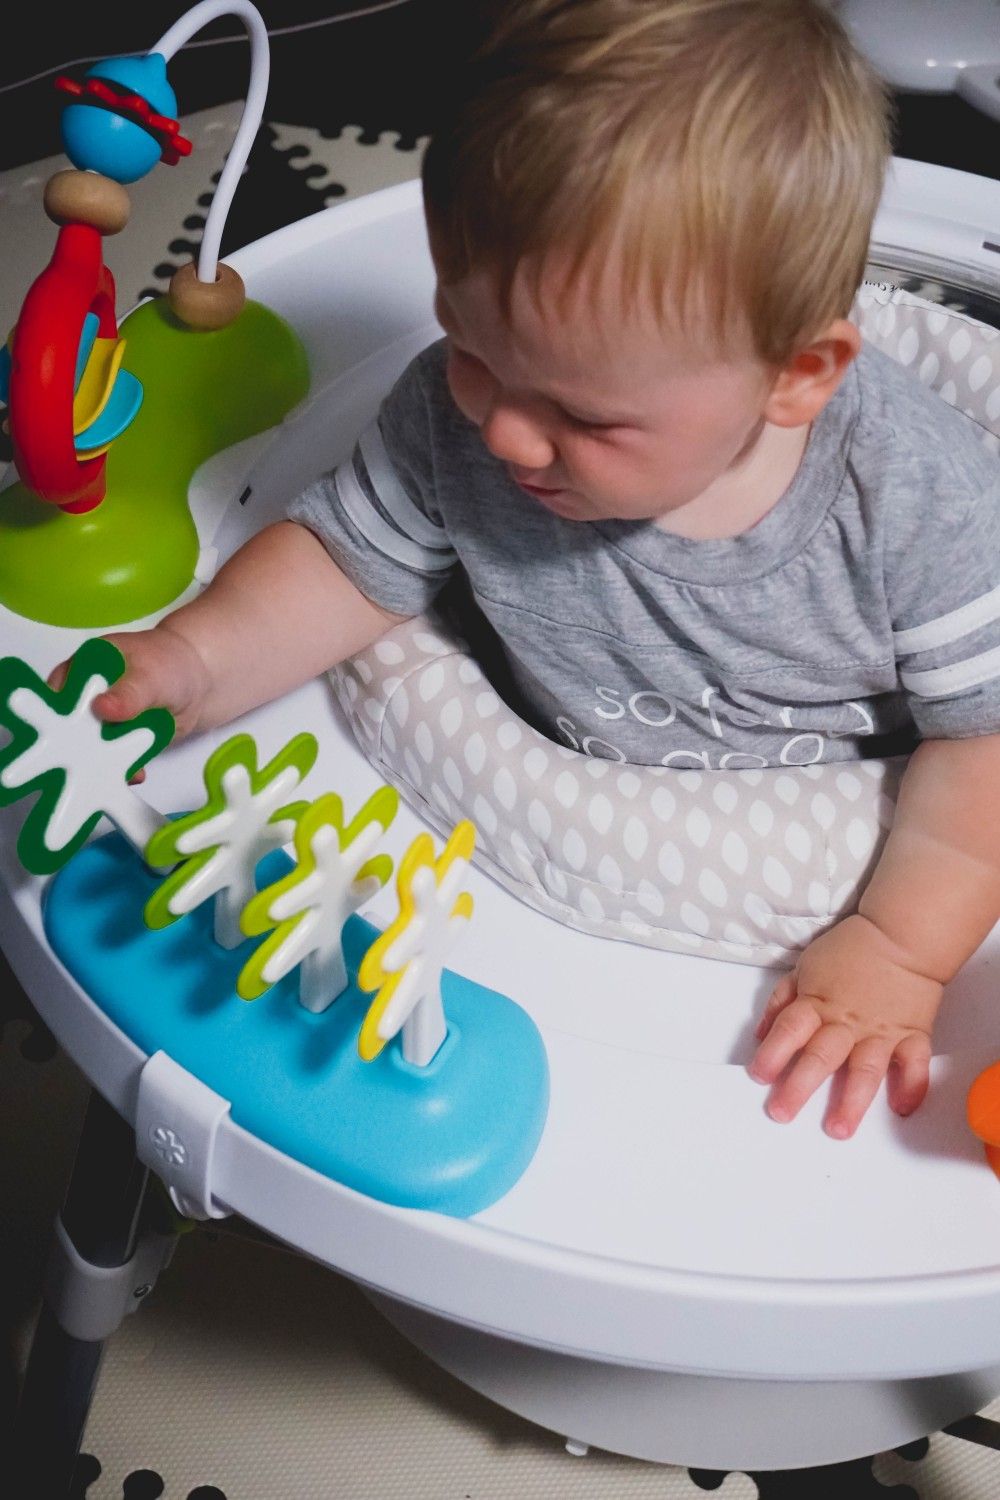 Playtime fun with Skip Hop-Skip Hop Floor Mats-Activity Gym-Mason's 10 Month Update-Motherhood-Have Need Want at Home 4